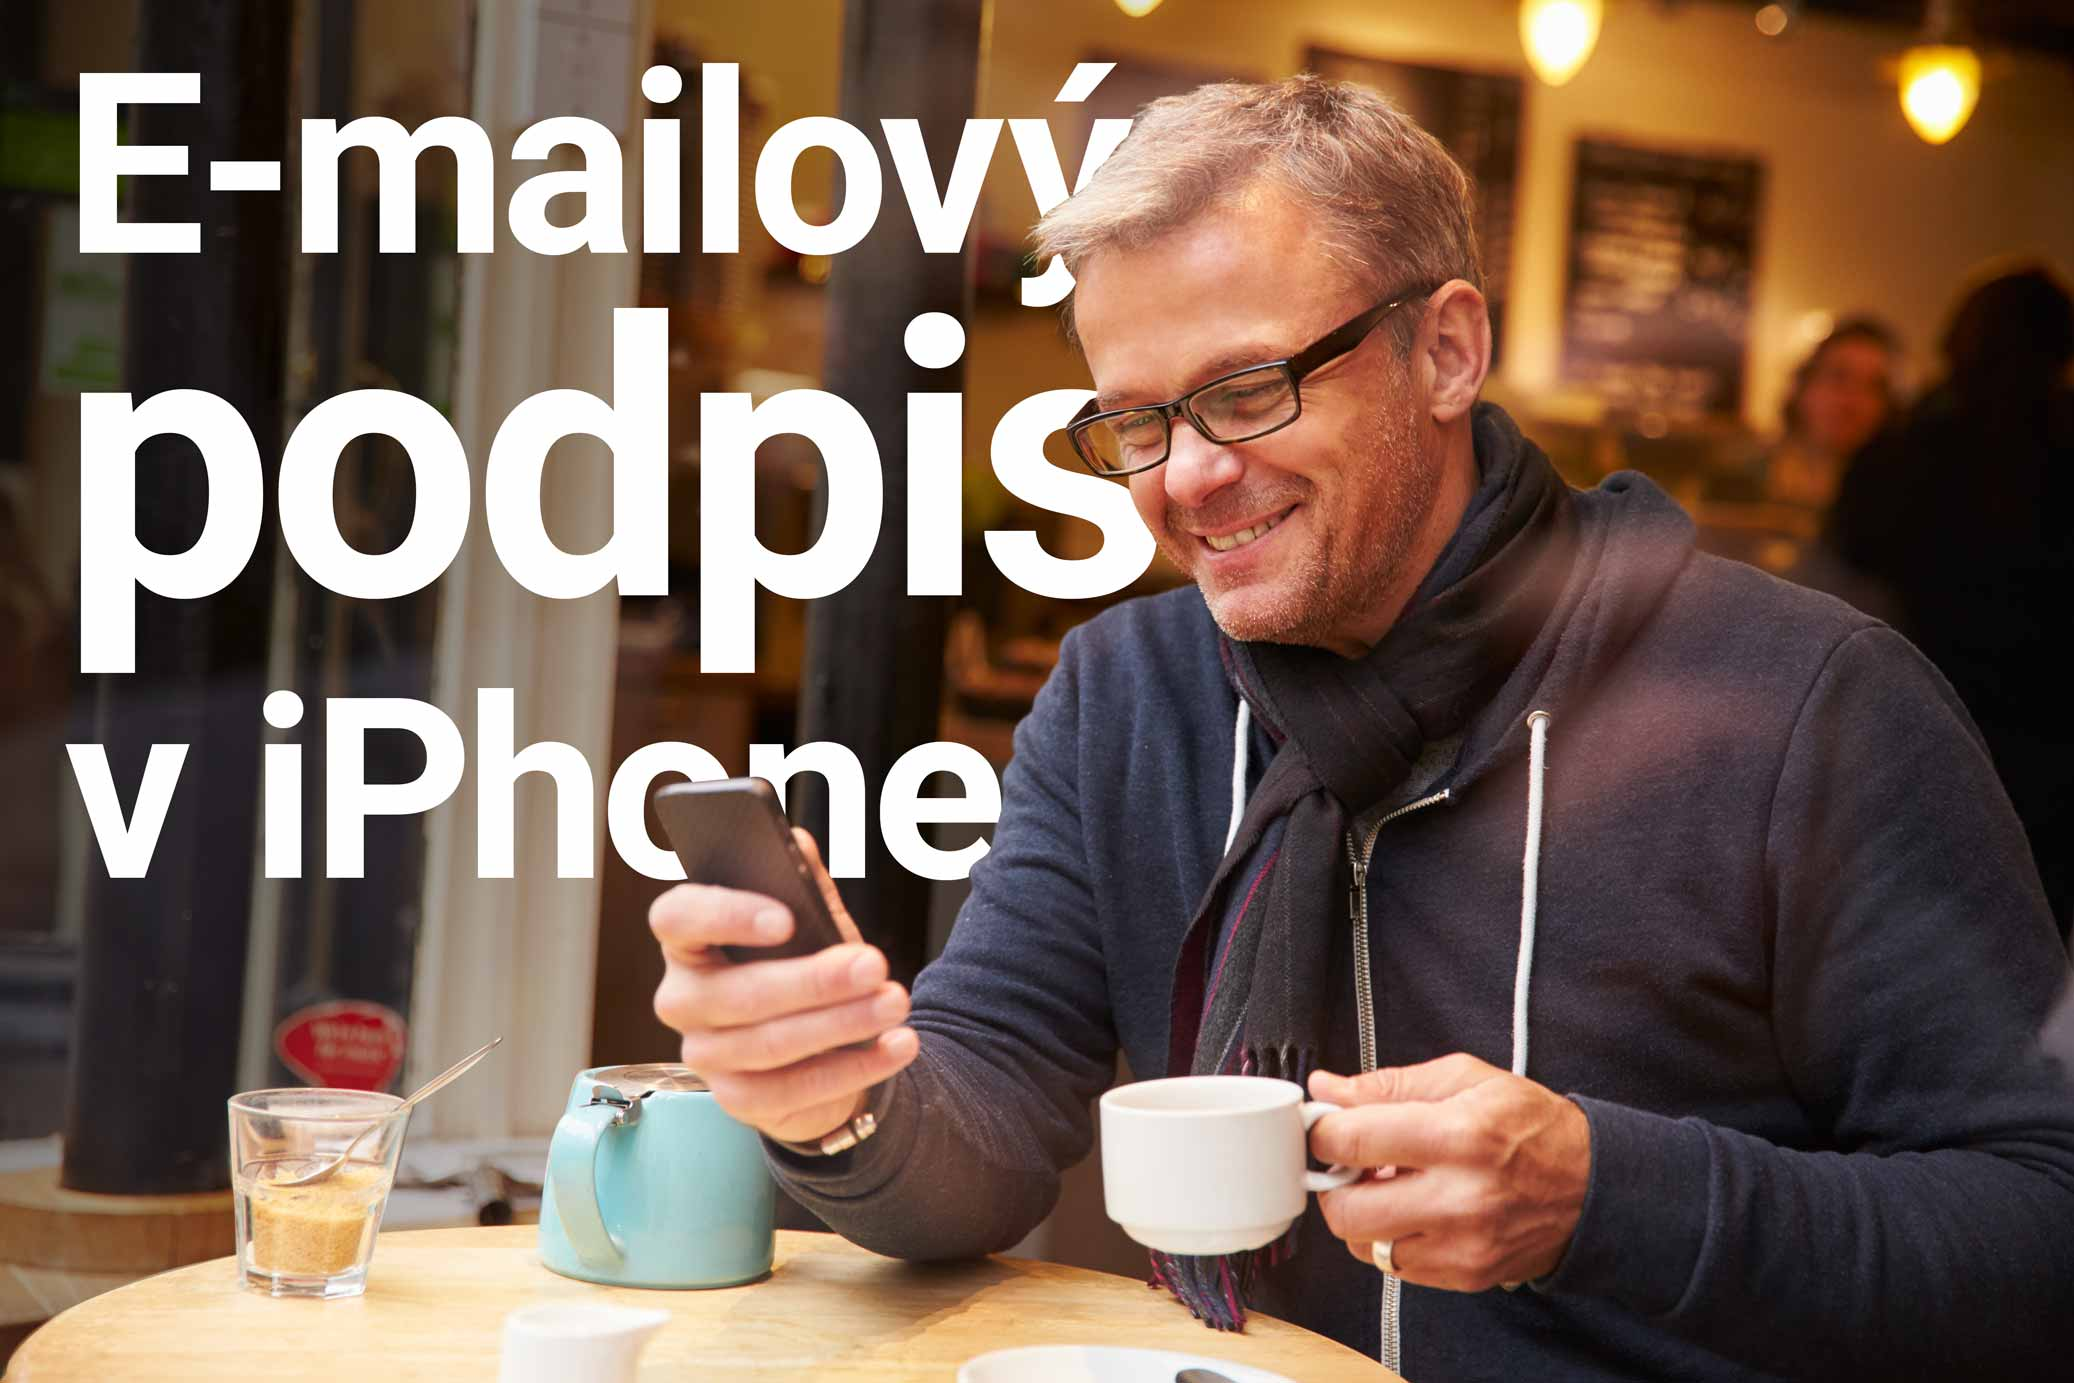 E-mailový podpis v iPhone